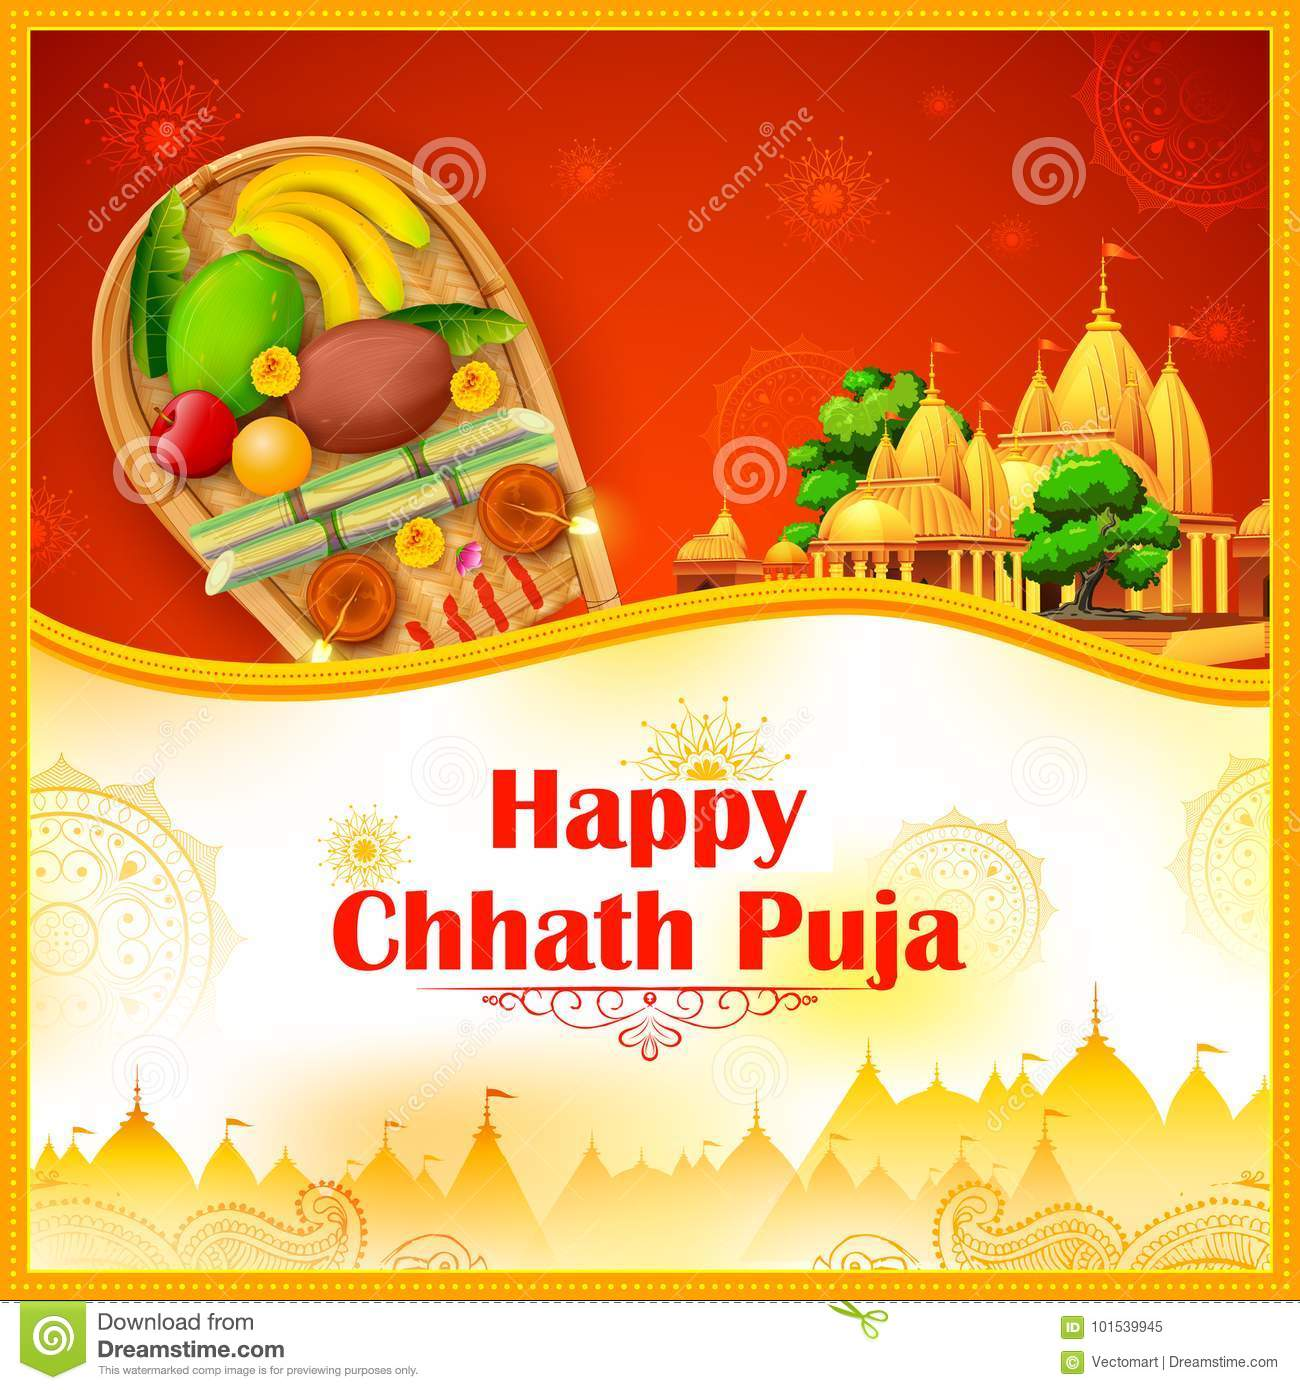 Happy Chhath Puja Holiday Background For Sun Festival Of India Stock